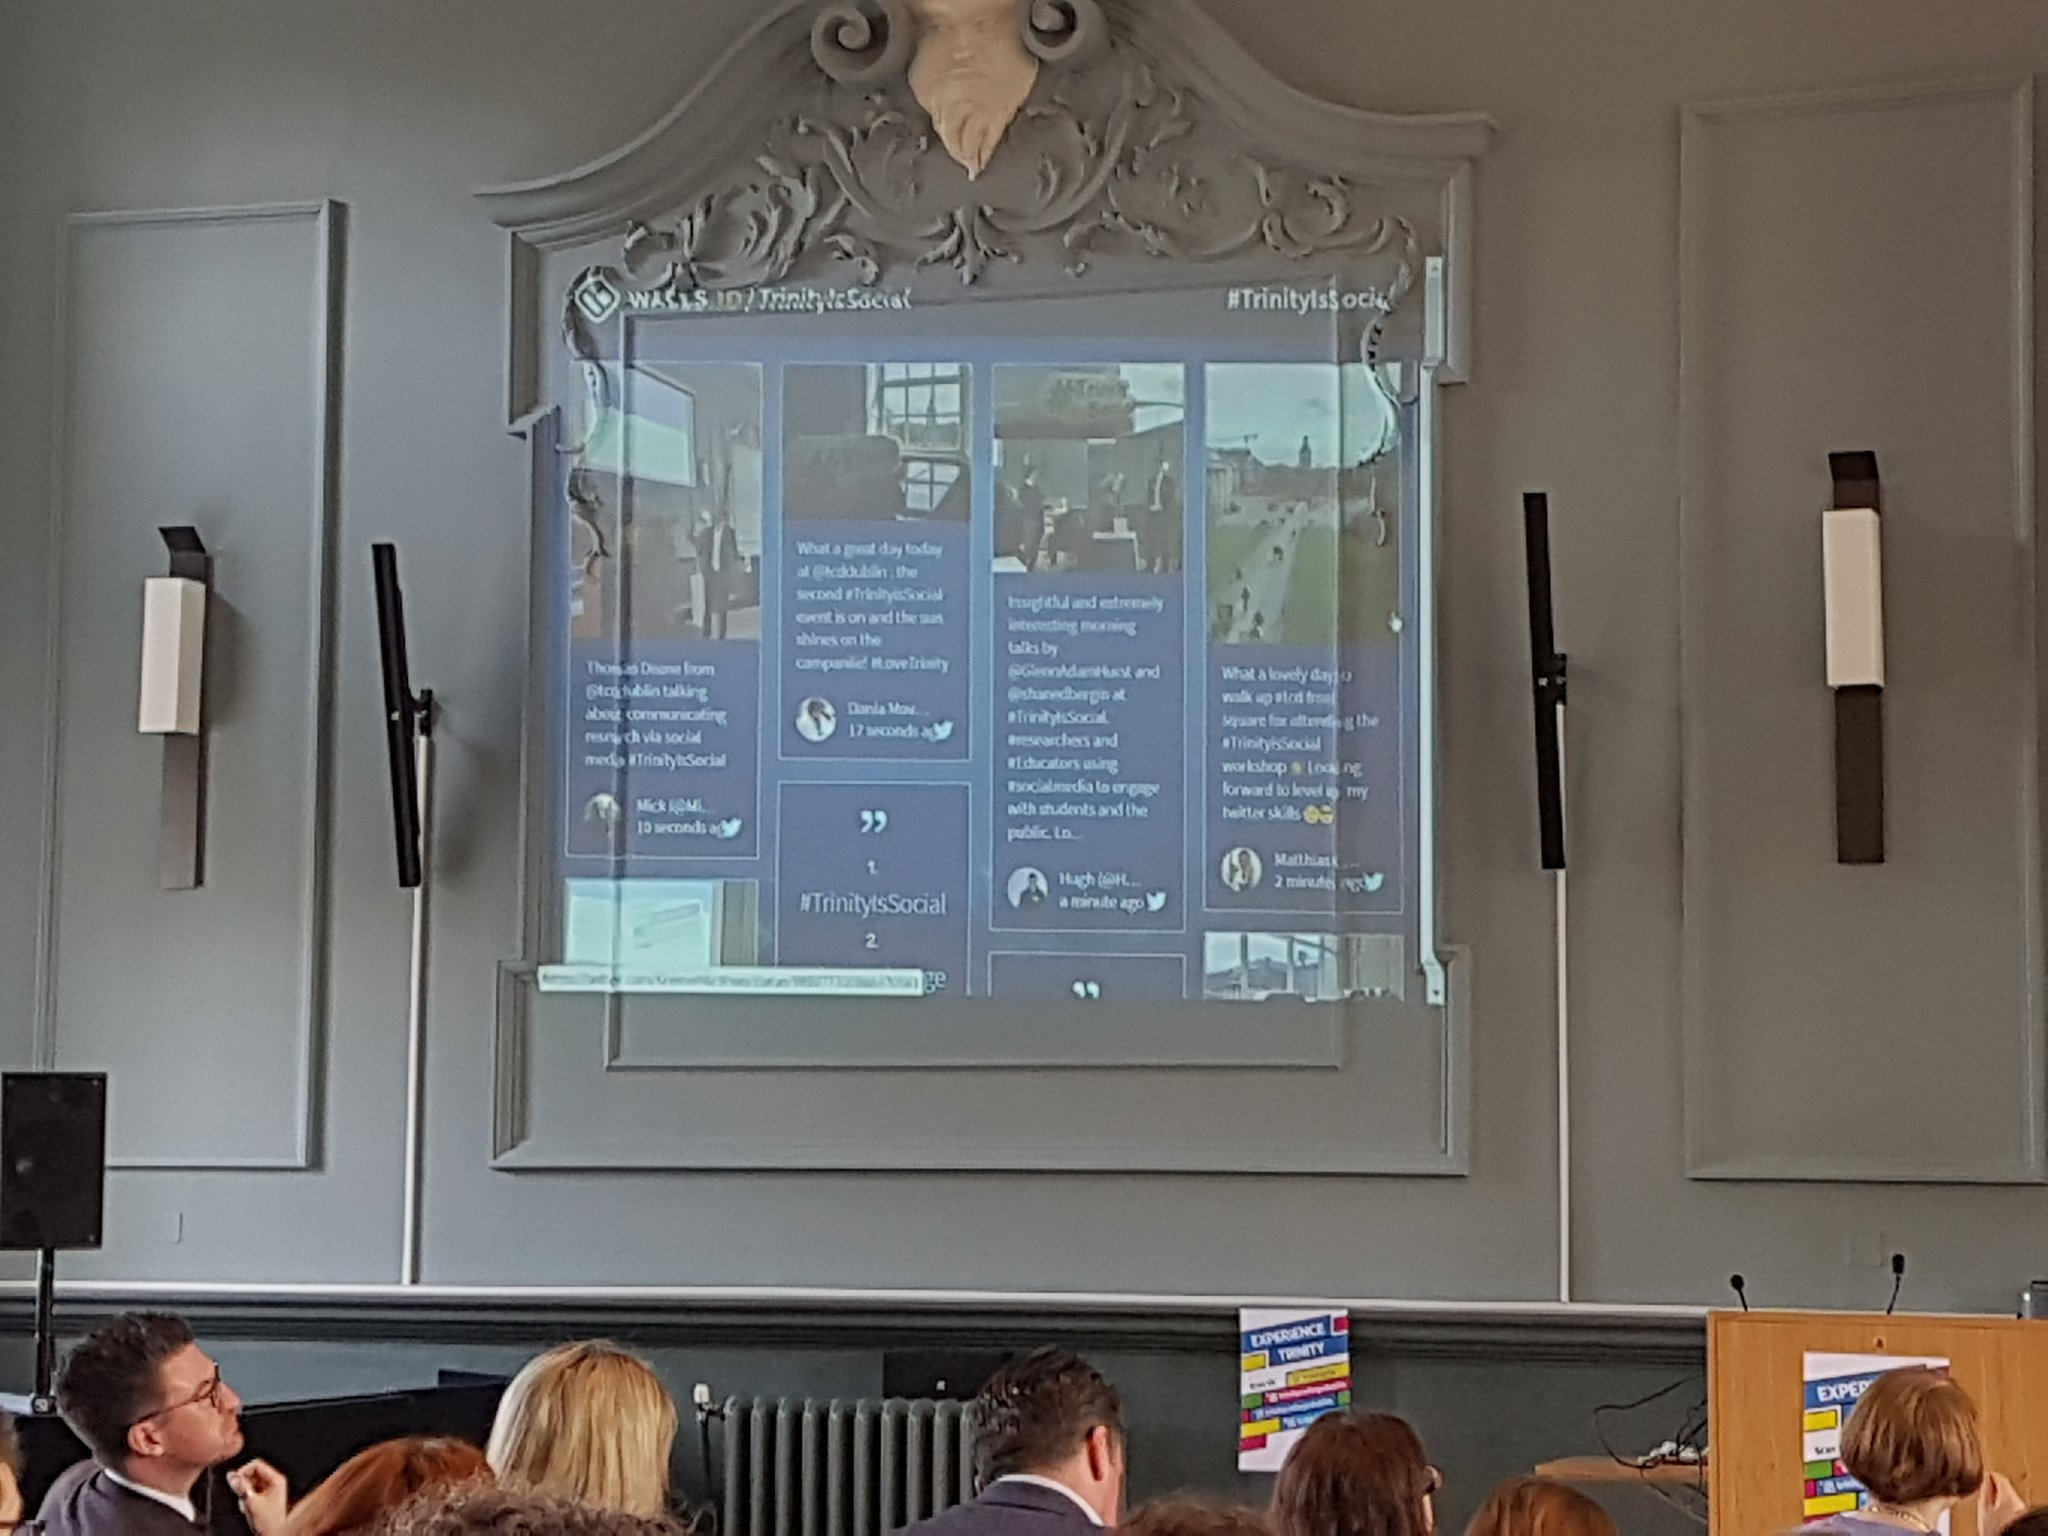 Our awesome #TrinityIsSocial twitter wall....no wonder we're trending.....again! https://t.co/ptm205dWt0